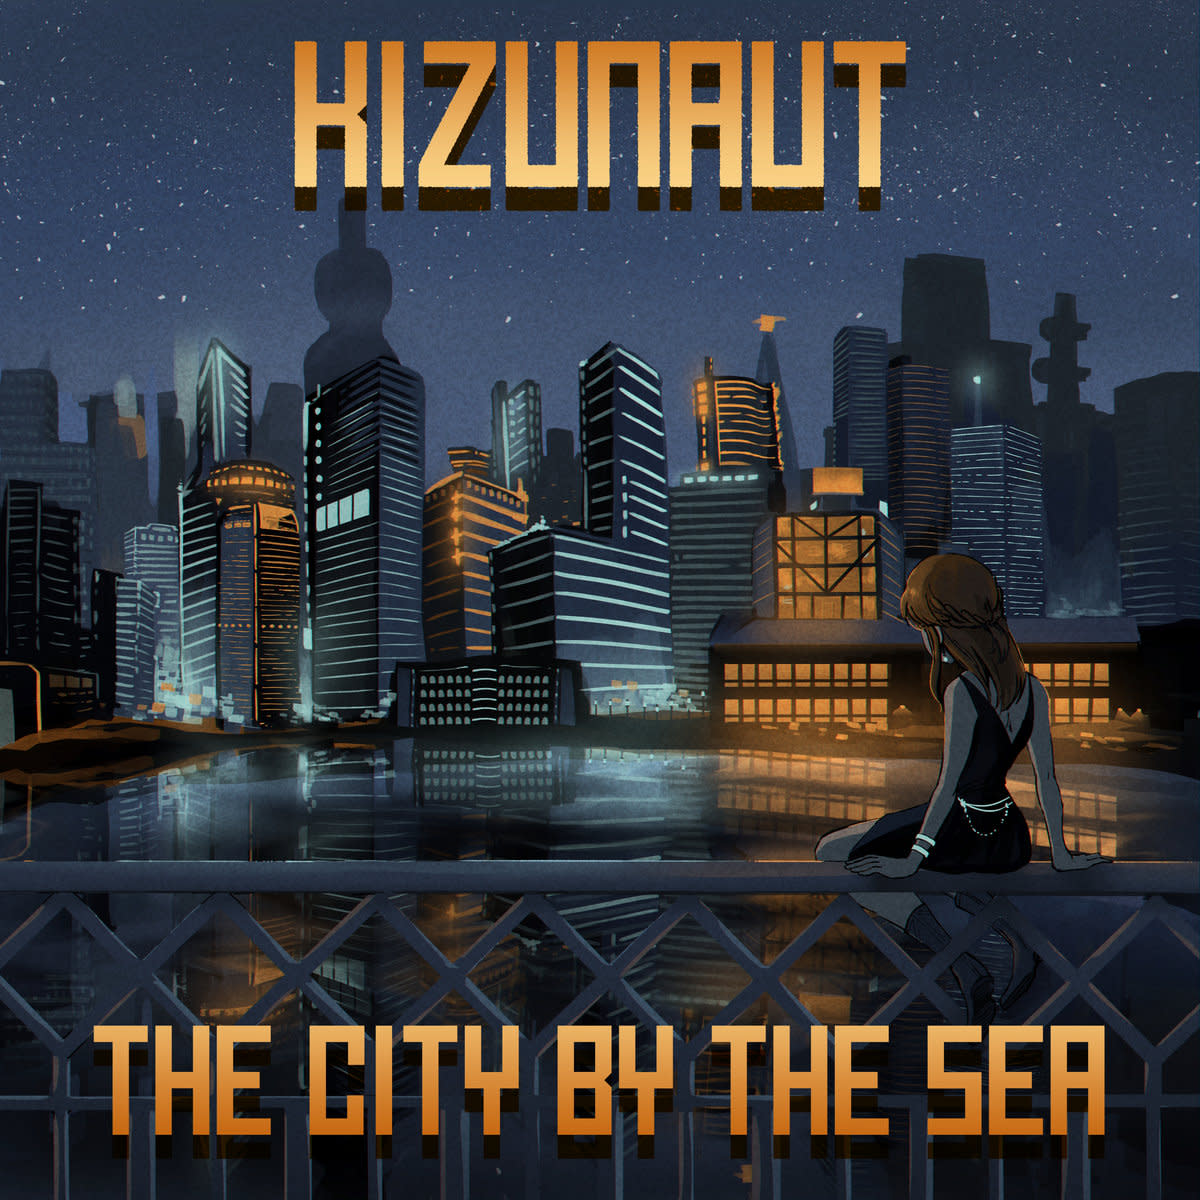 synth-album-review-the-city-by-the-sea-by-kizunaut